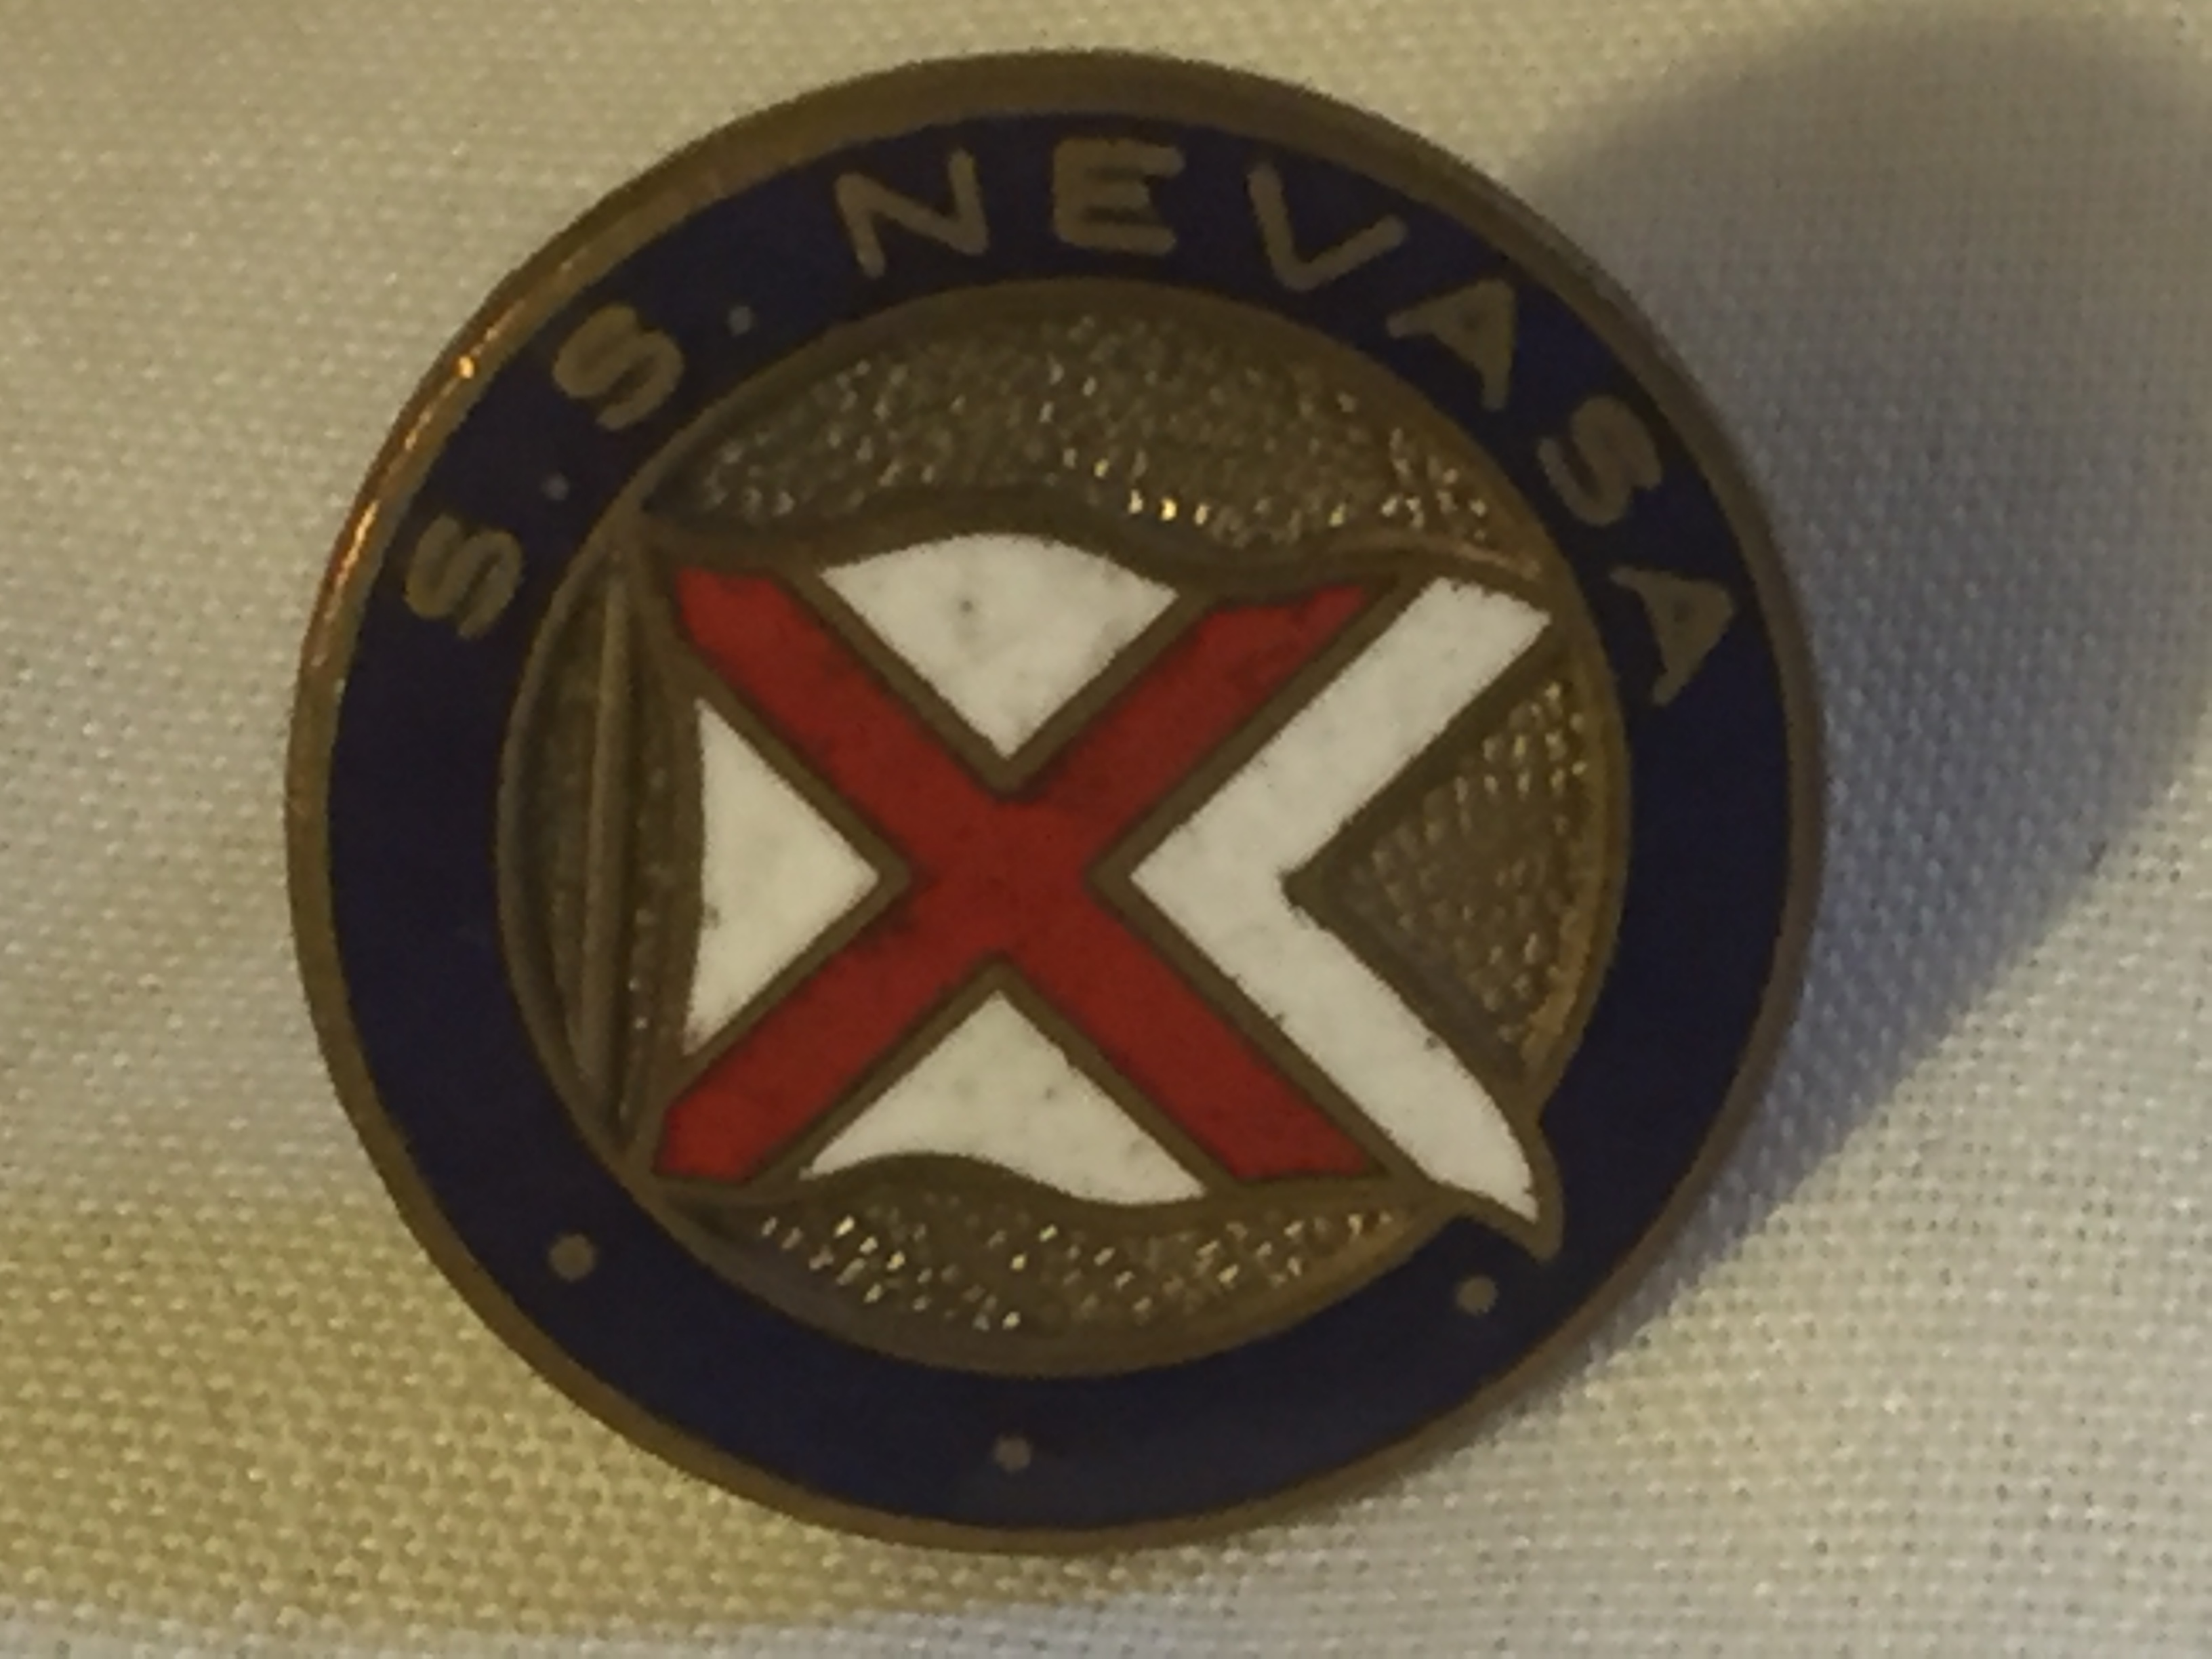 LAPEL PIN BADGE FROM THE VESSEL THE SS NEVASA OF THE BRITISH INDIA STEAM NAVIGATION COMPANY